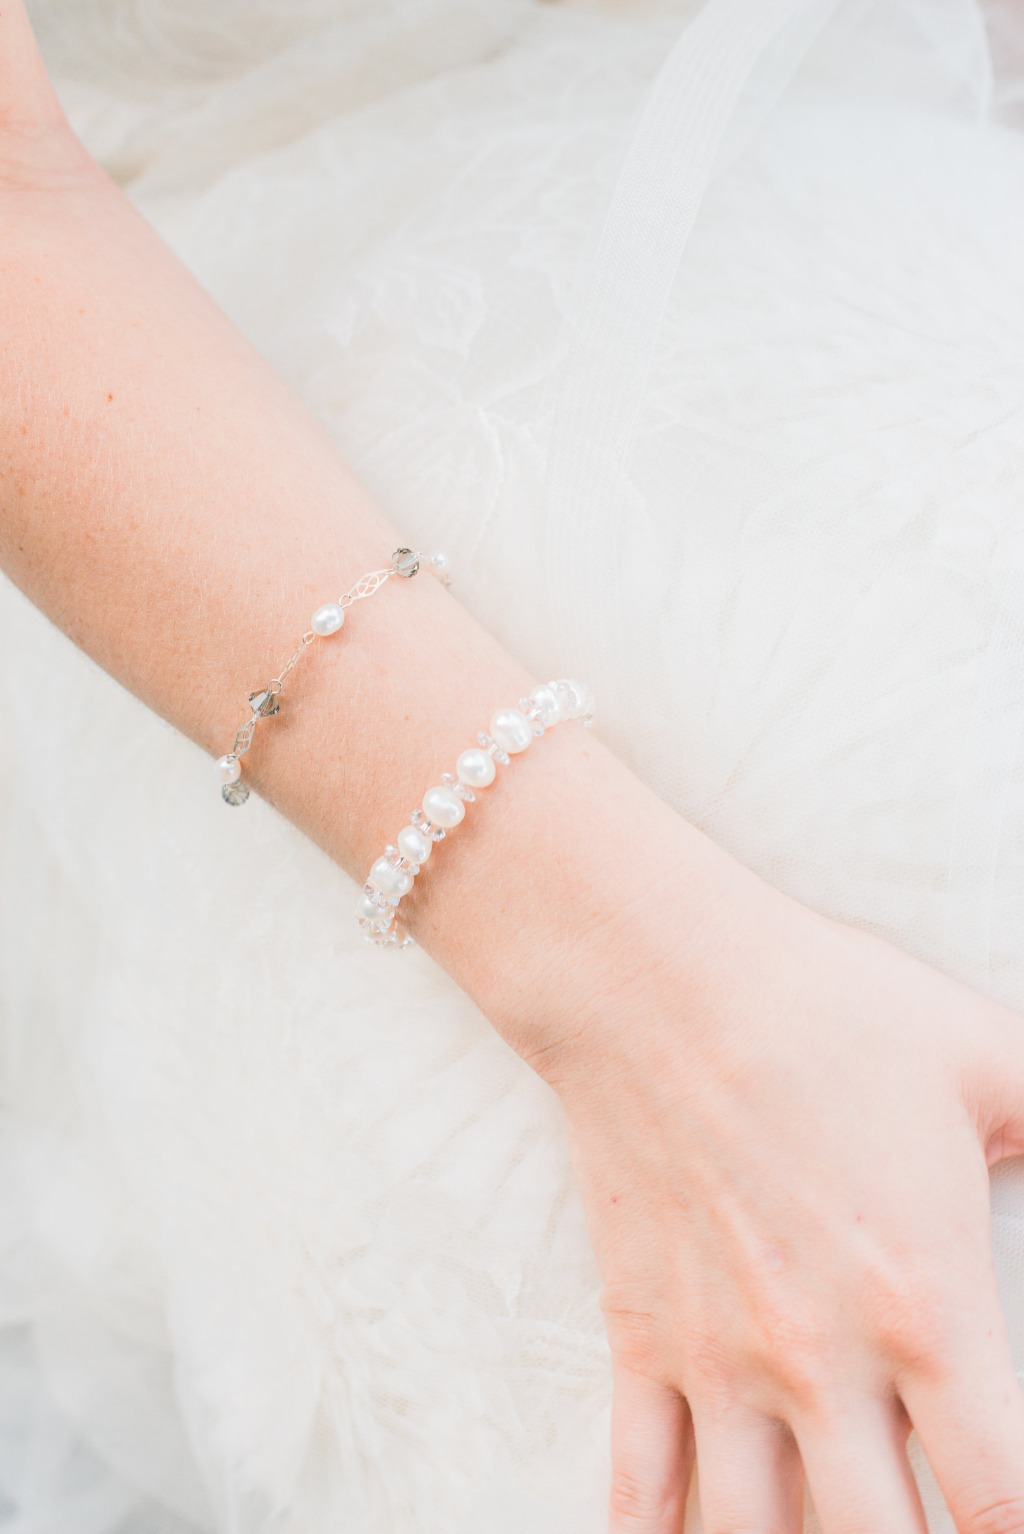 Love to stack your bracelets but don't want to look gaudy on your wedding day? Choose delicate bracelets with complementary elements